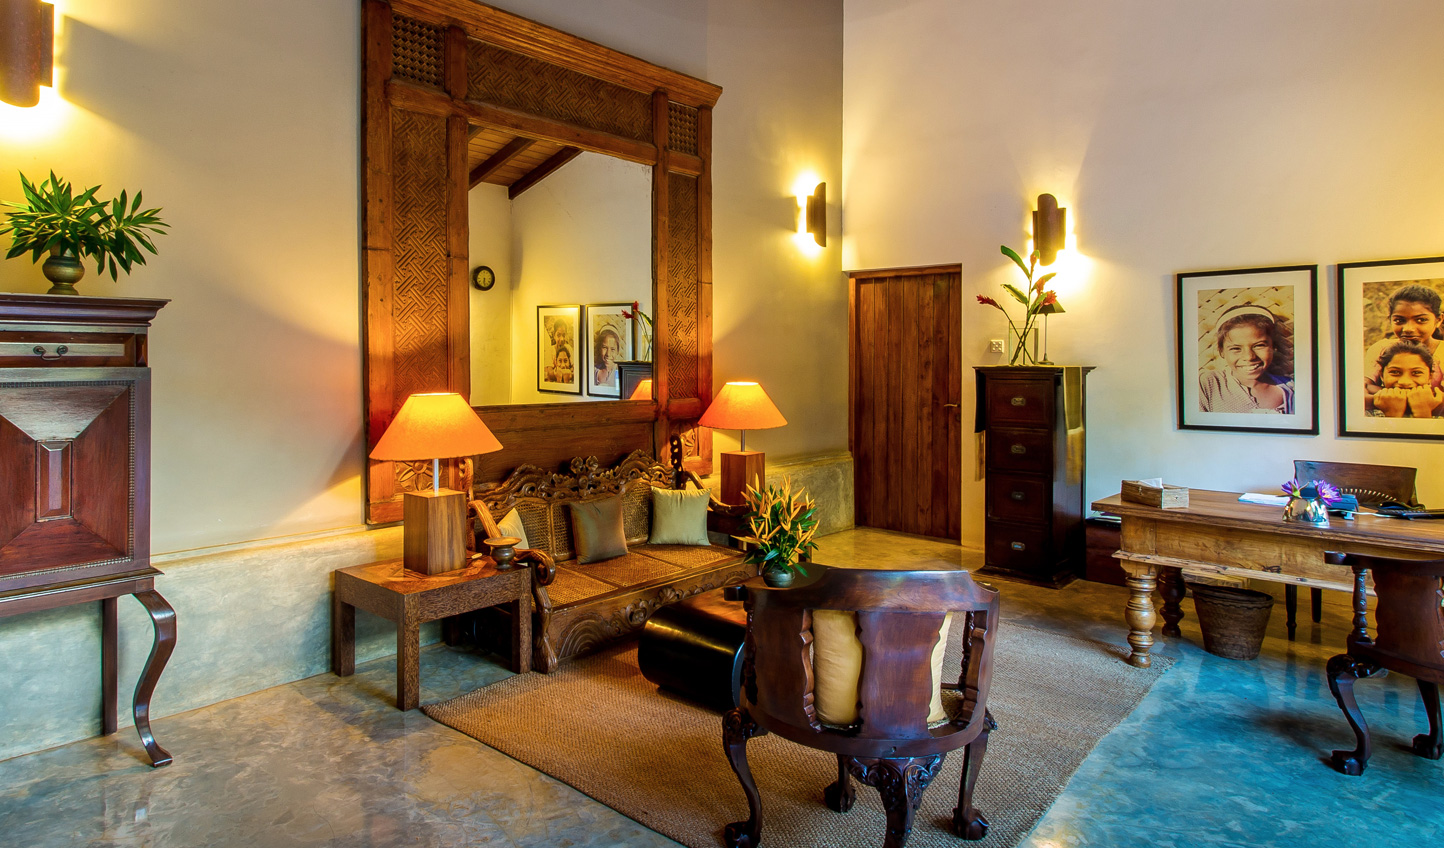 Colonial design is blended with traditional Sri Lankan touches